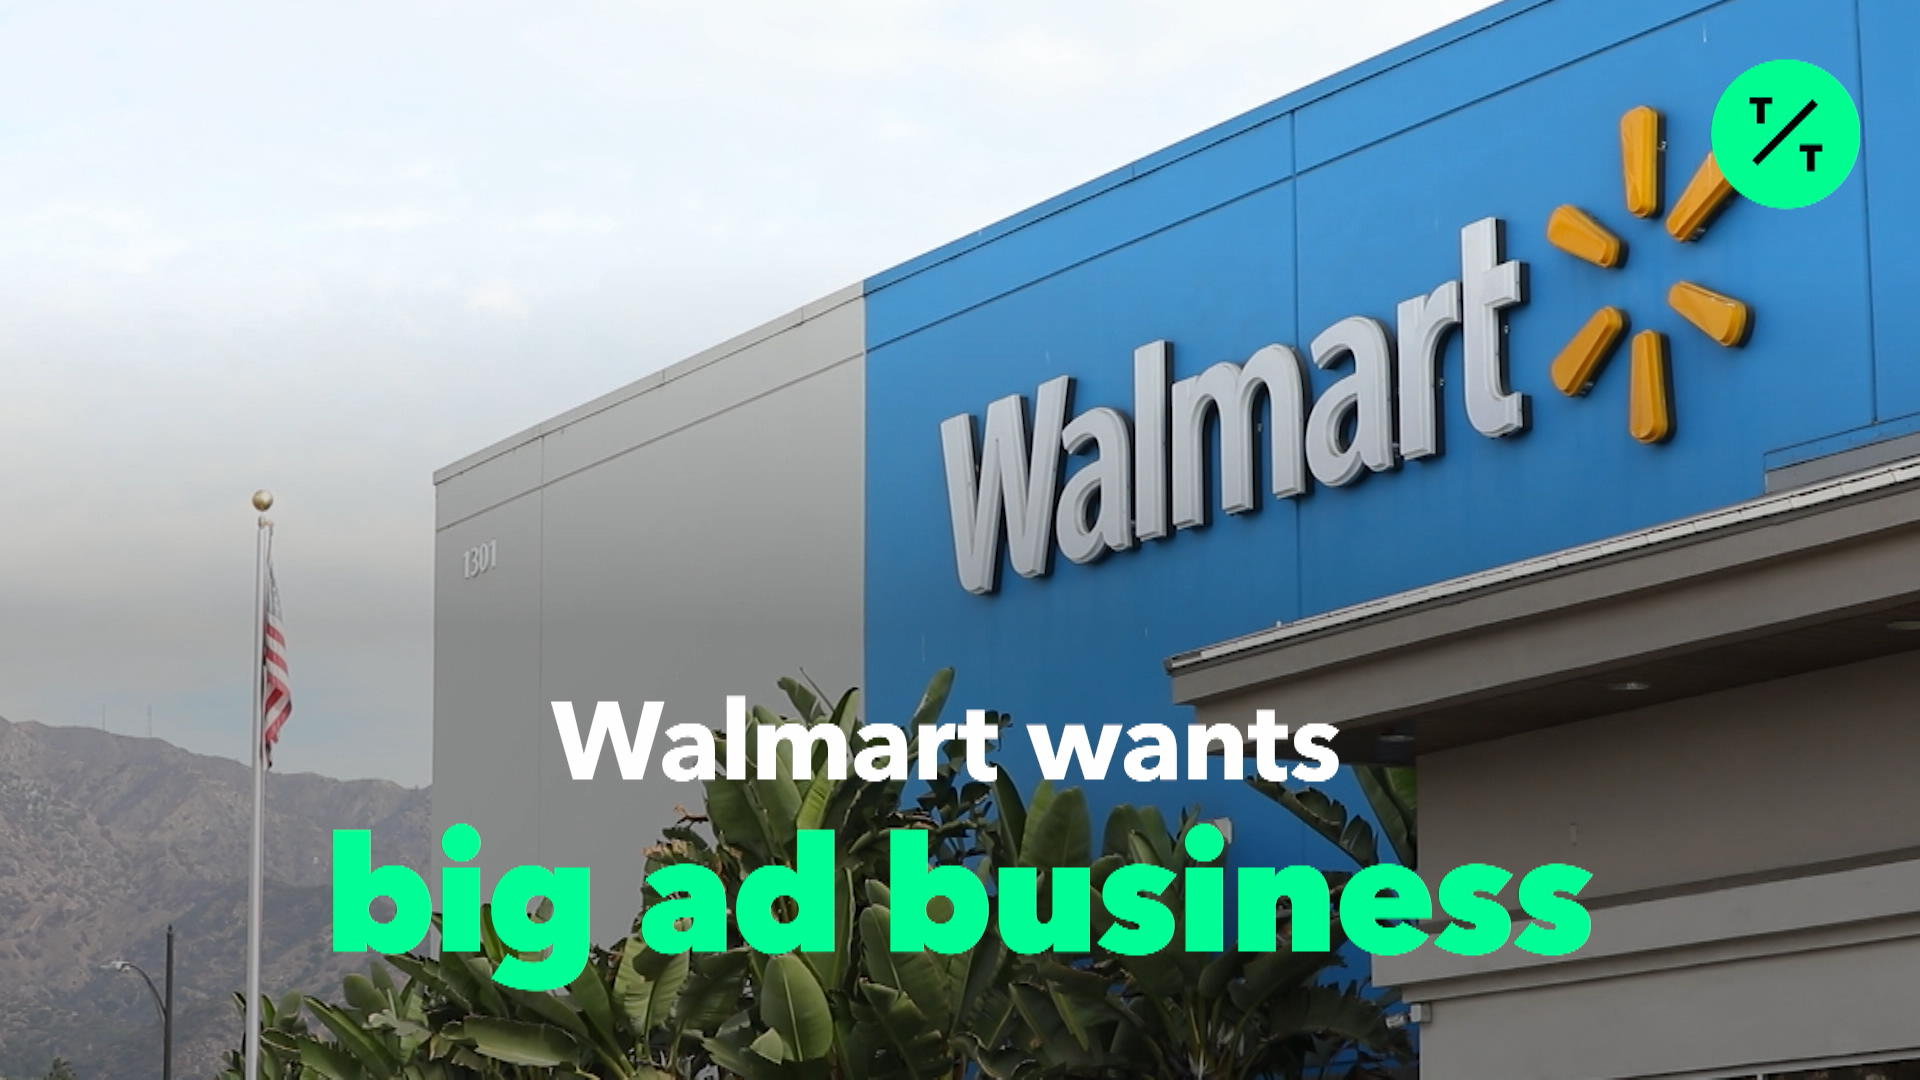 Amazon Has a Big Advertising Business  Walmart Wants One Too - Bloomberg